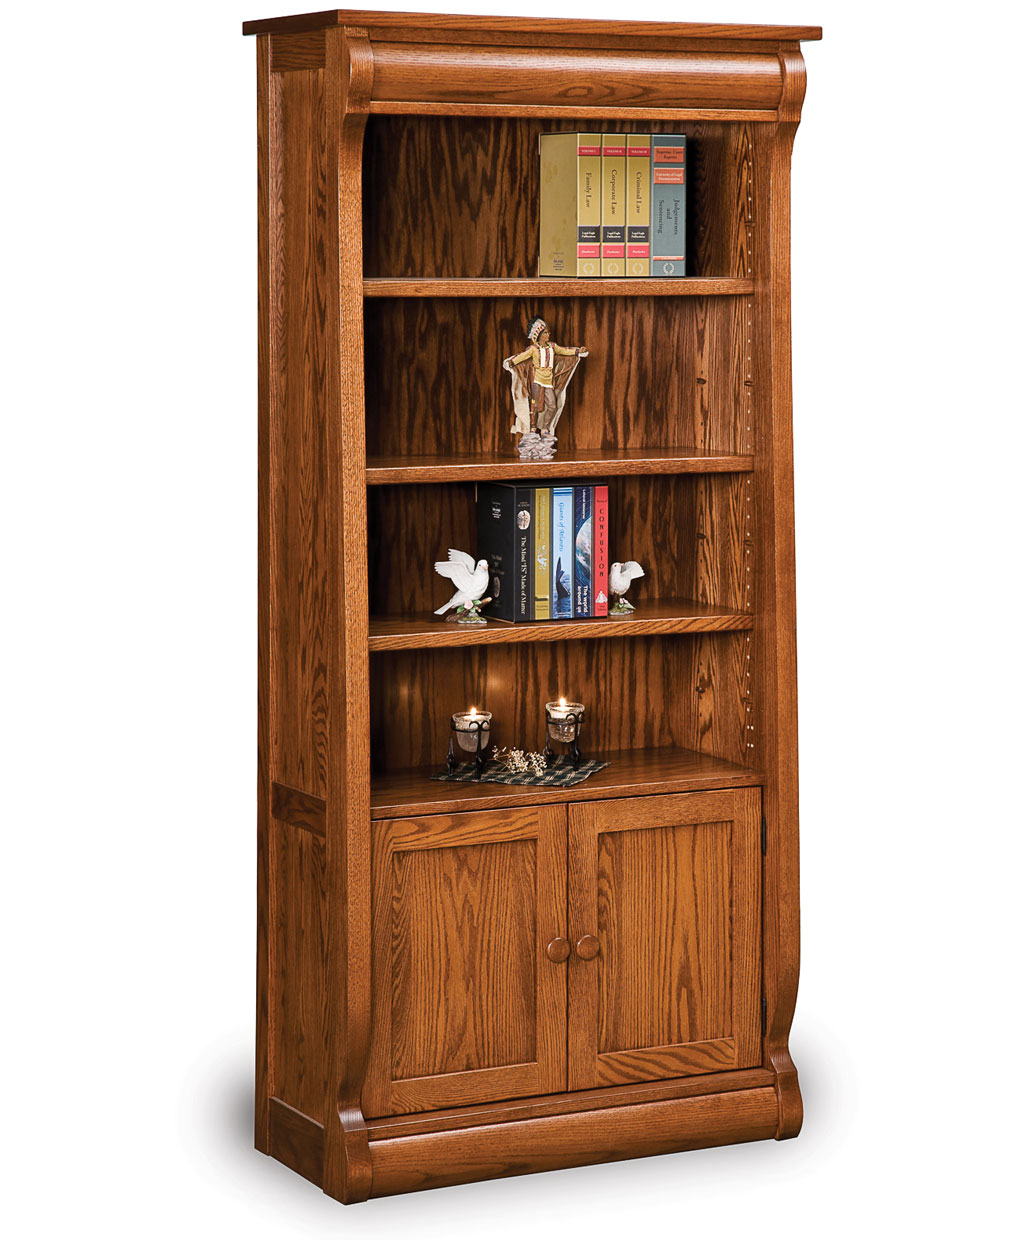 Old Classic Sleigh Bookcase with Doors - Amish Direct Furniture